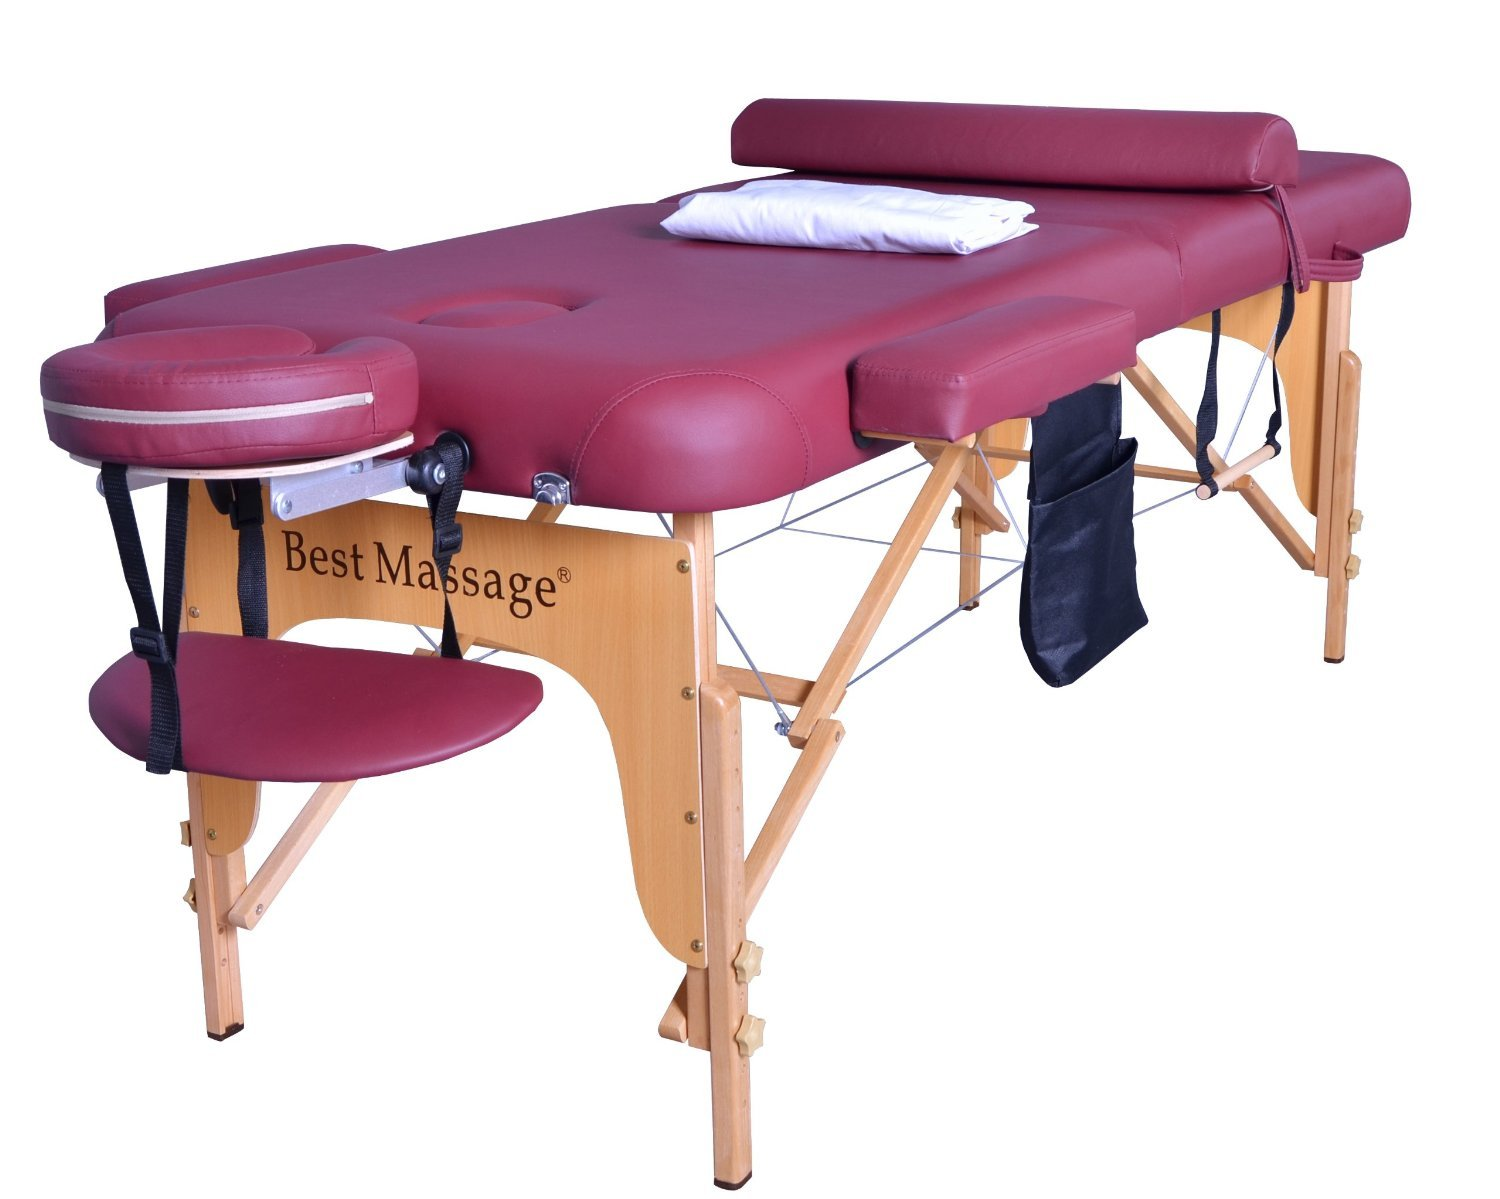 """Amazon.com: 2.5"""" Massage Table Portable Facial SPA Bed W/Sheet  ... for Massage Bed Top View  568zmd"""